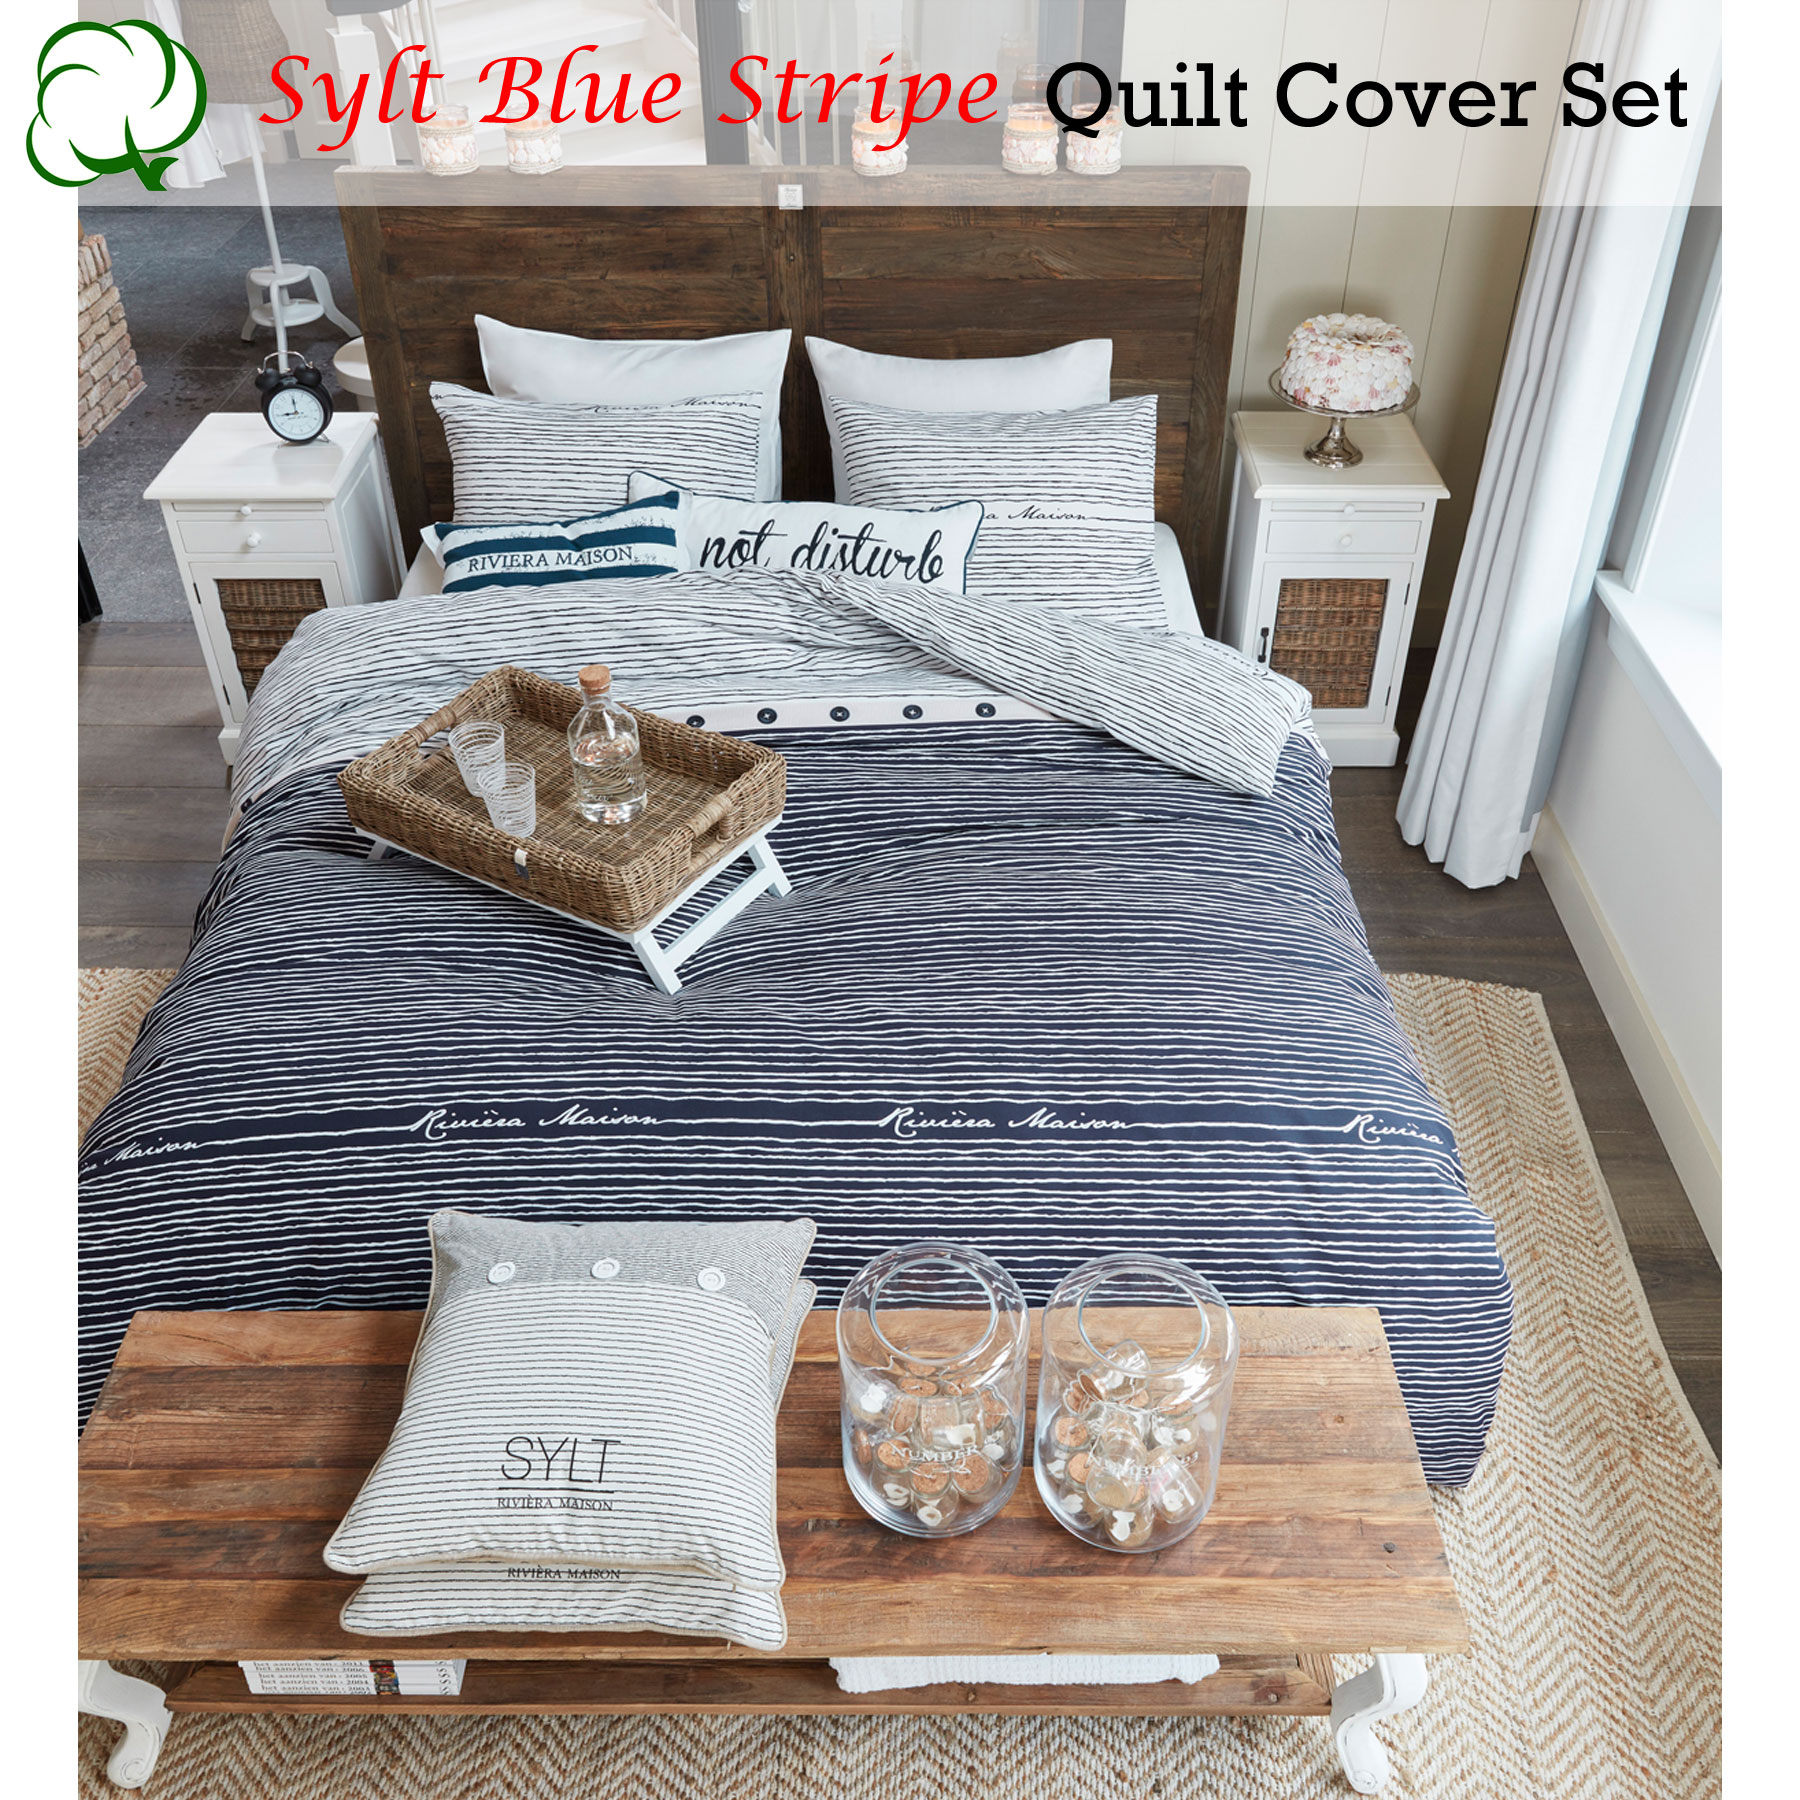 Riviera Maison Bed.Details About Cotton Sylt Blue Stripe Quilt Cover Set By Riviera Maison Queen King Super King